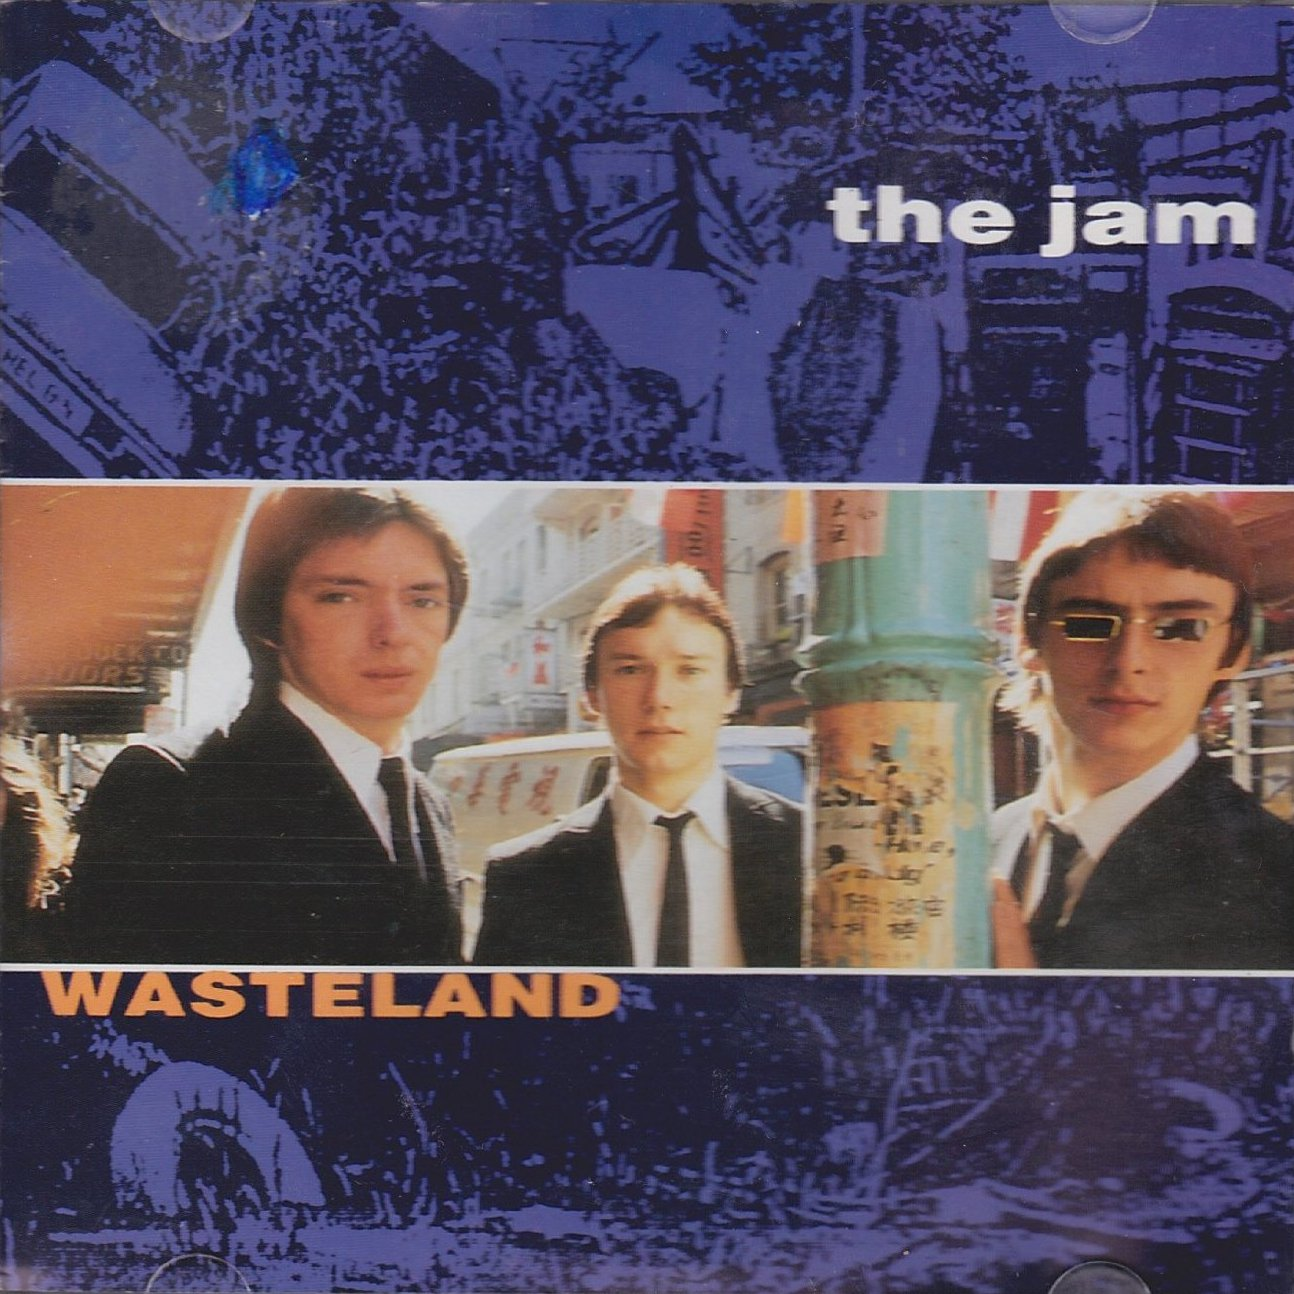 The Jam compilation album, Wasteland, front cover